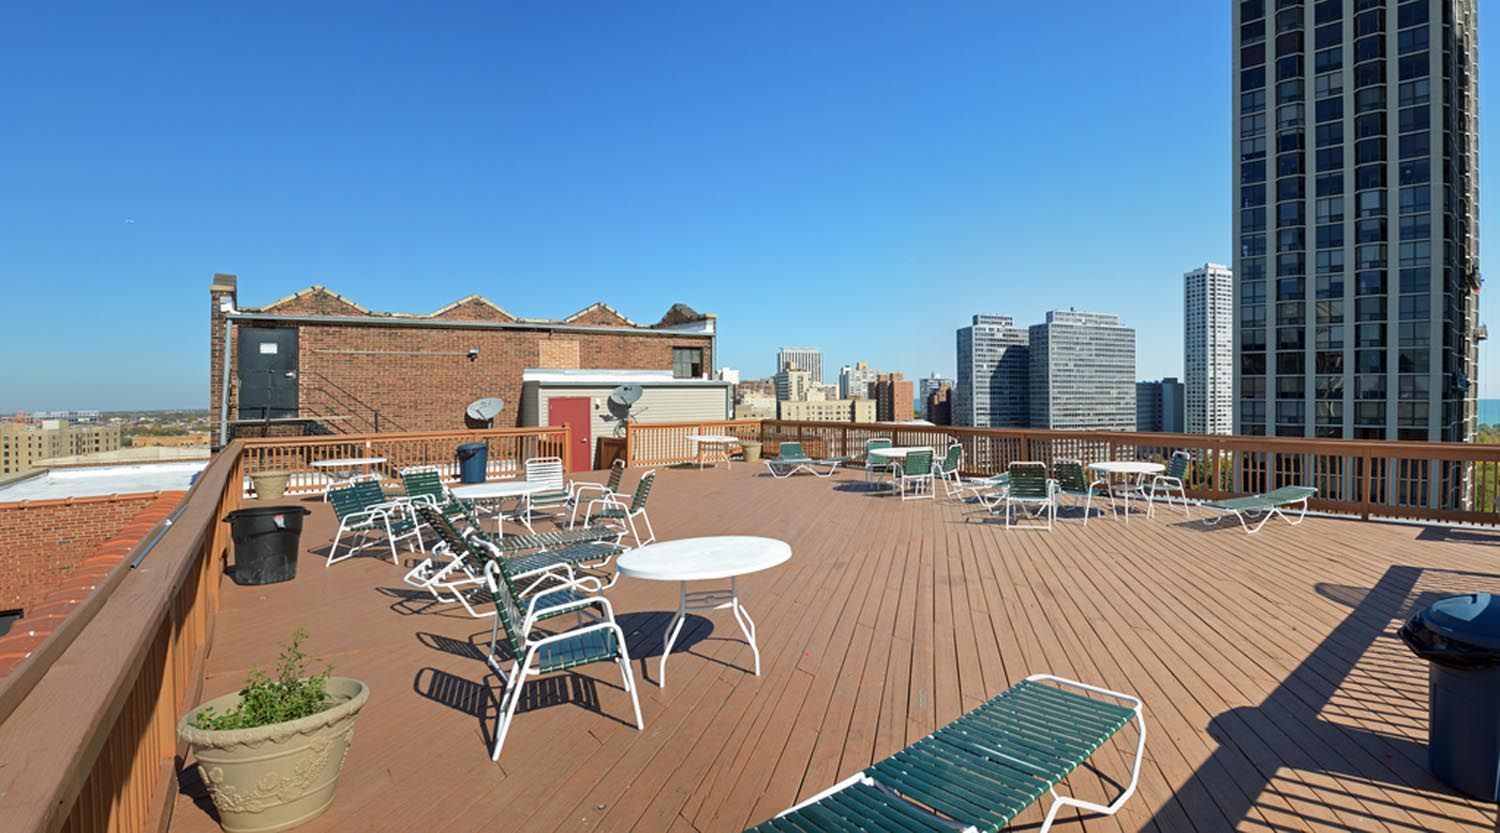 443 W Wrightwood Ave Chicago Il 60614 Rooftop Deck Chicago